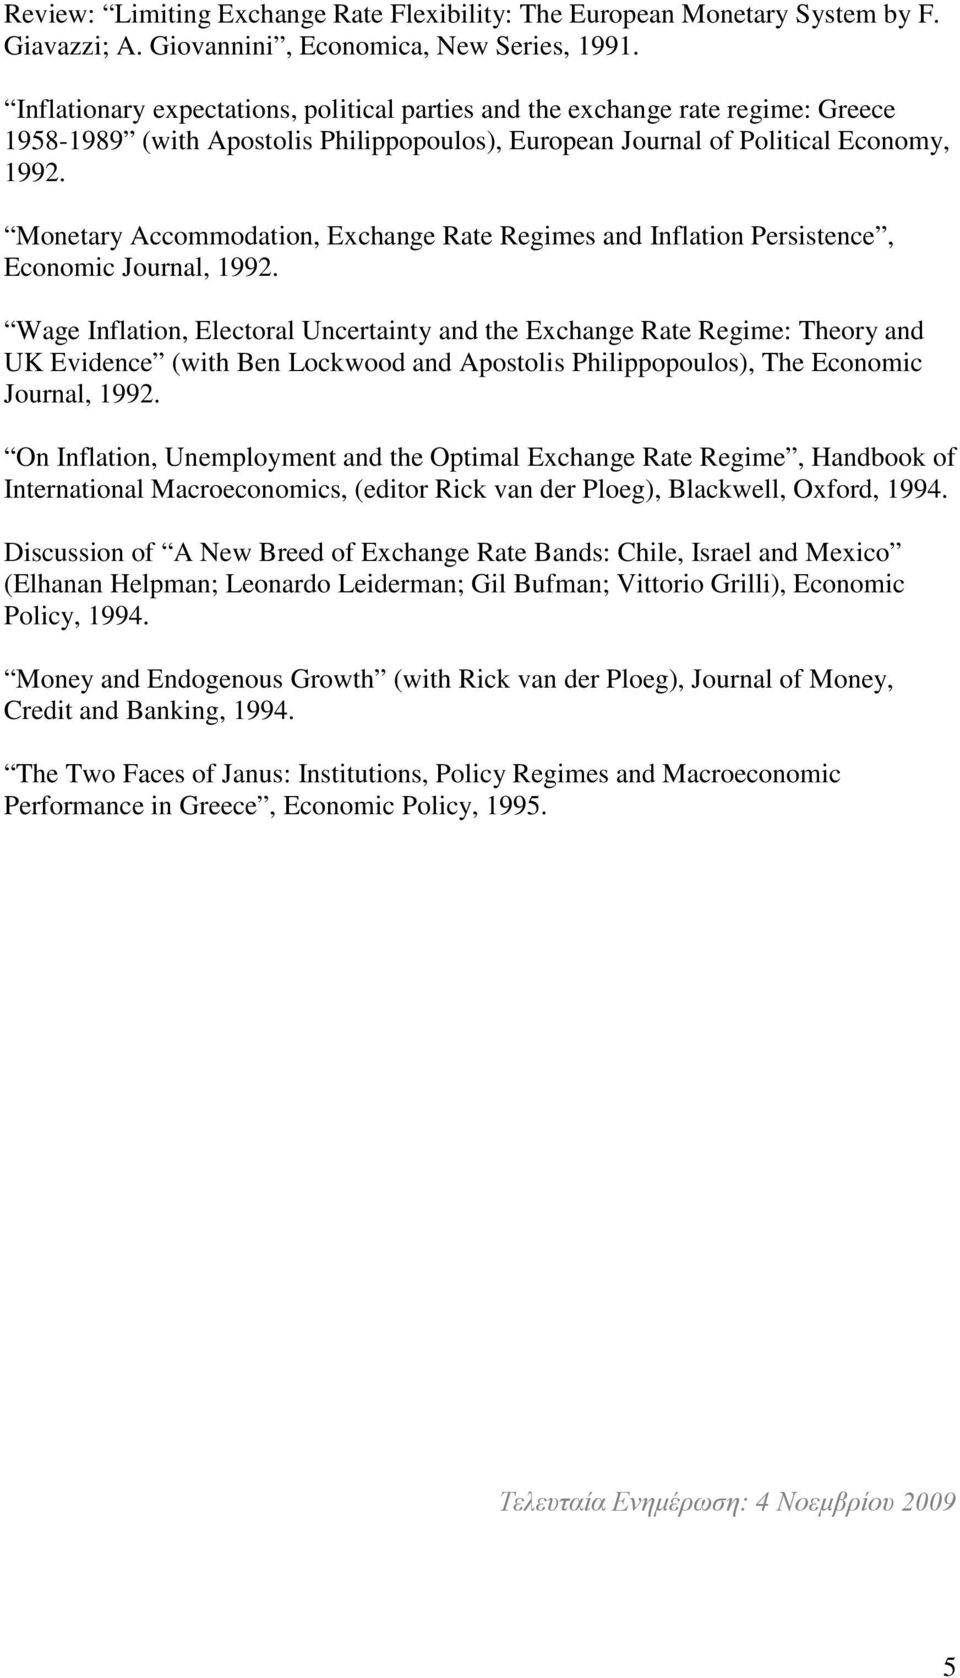 Monetary Accommodation, Exchange Rate Regimes and Inflation Persistence, Economic Journal, 1992.